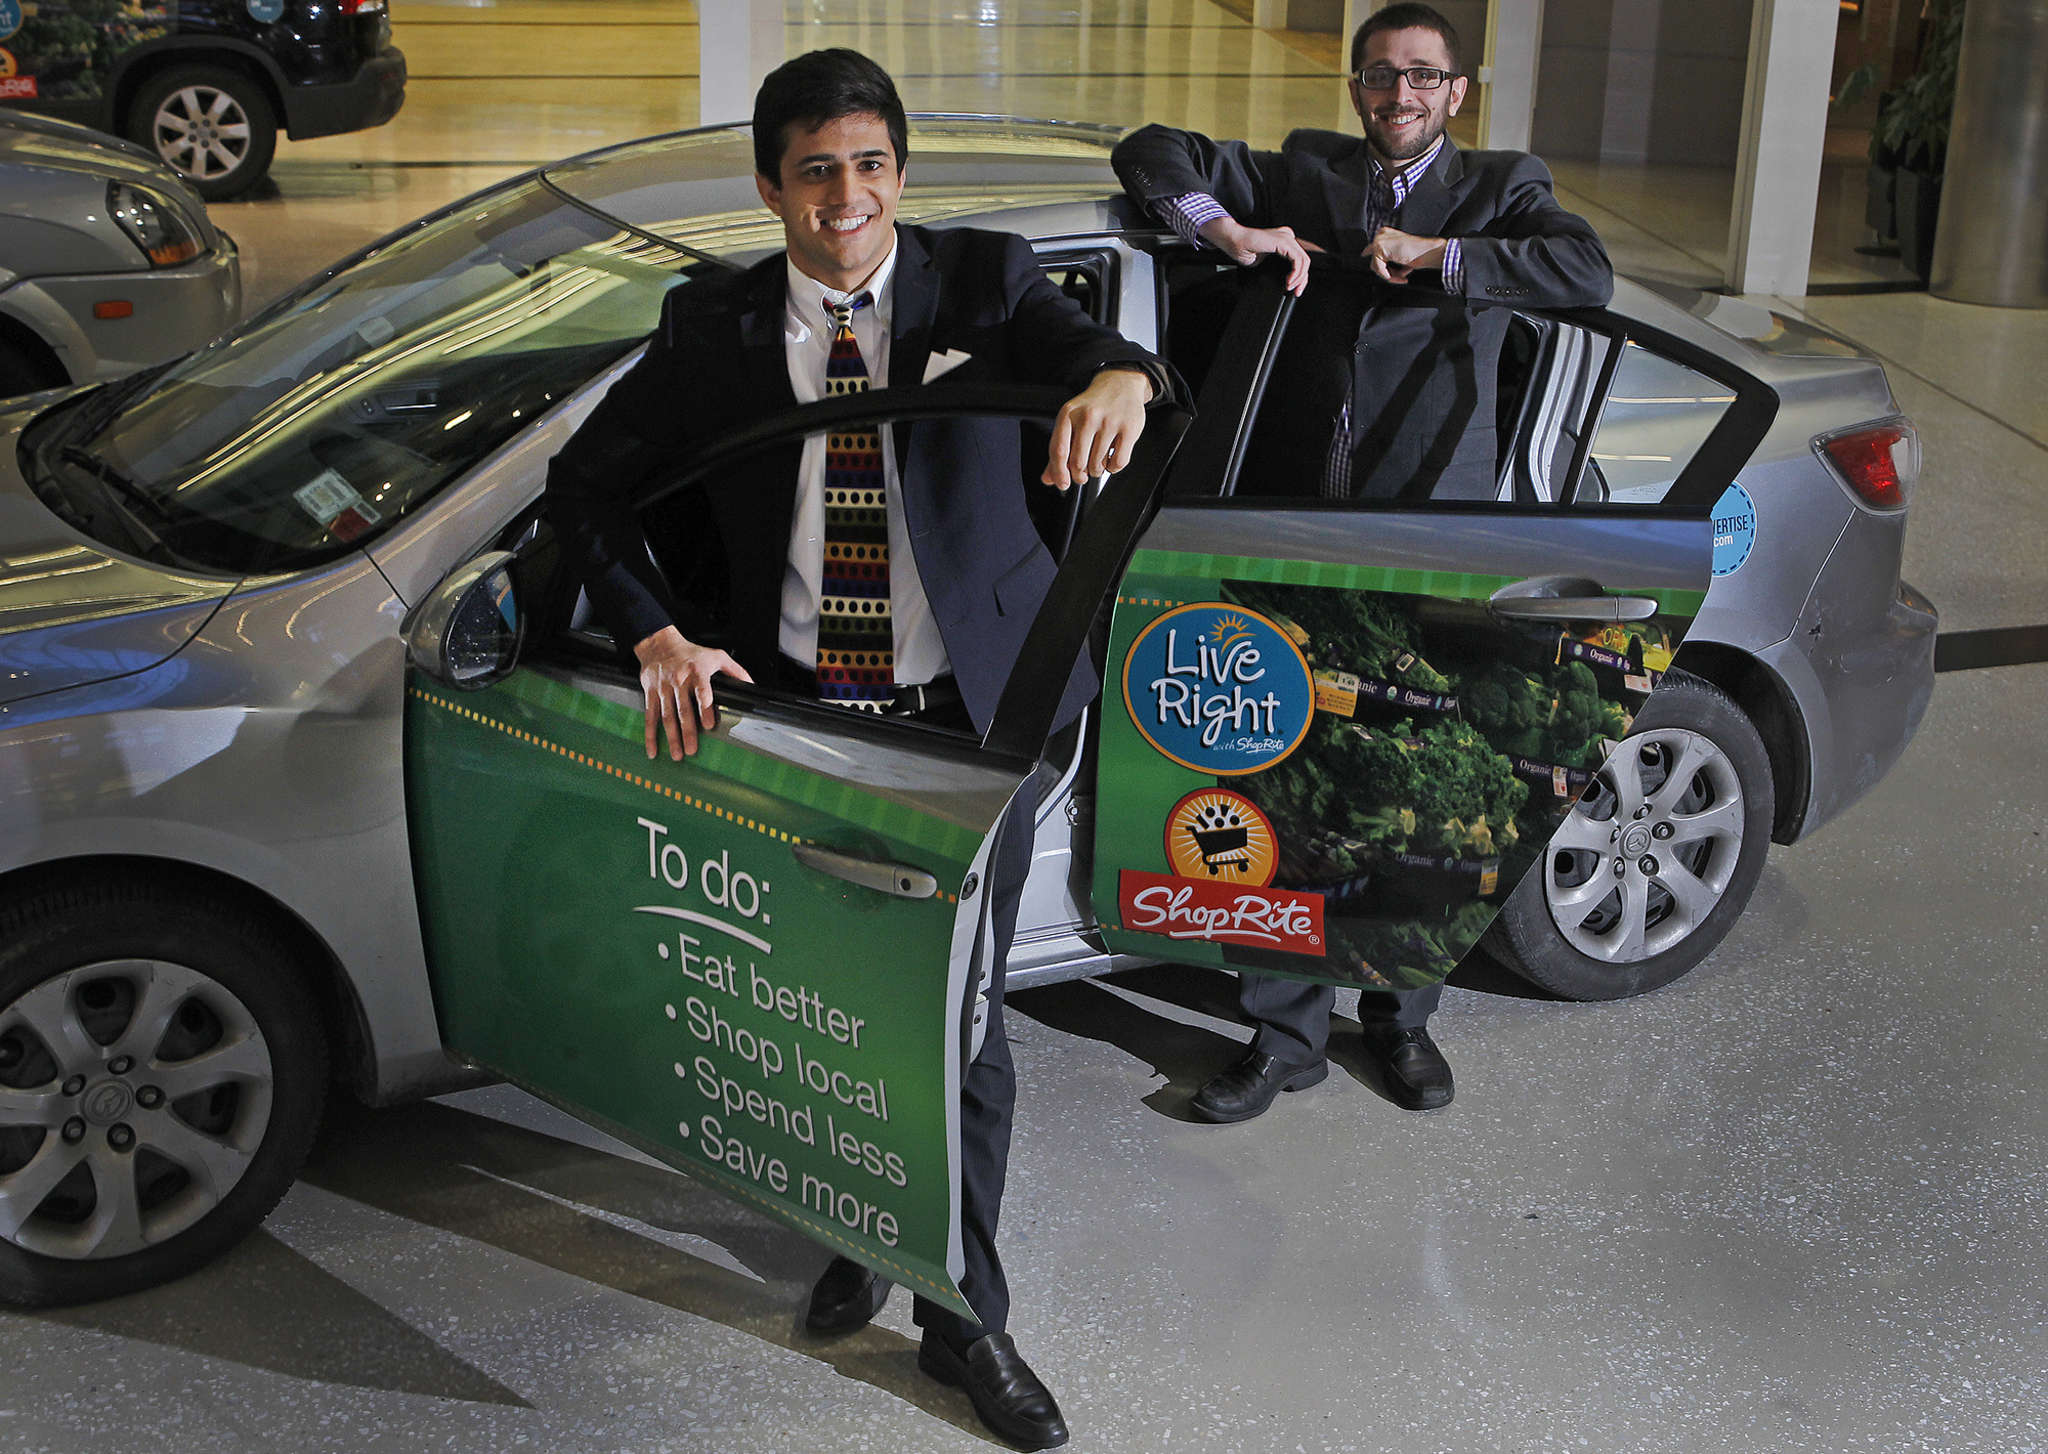 Carvertise cofounders Mac Nagaswami (left) and Greg Star with a wrapped vehicle at company headquarters in Wilmington.